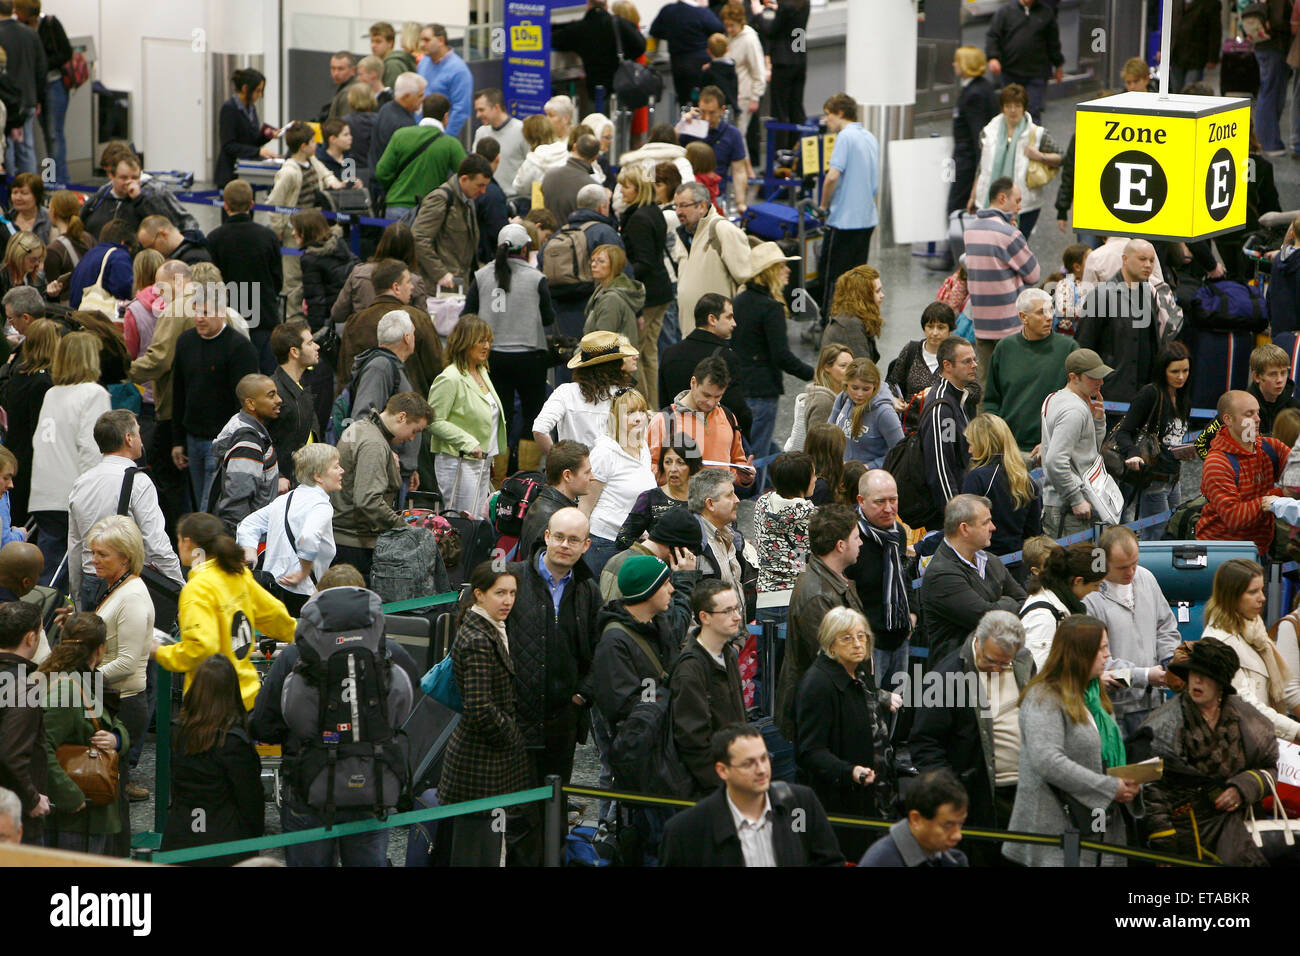 Travelers in the South terminal of London's Gatwick Airport queue to check in.Picture by James Boardman Stock Photo